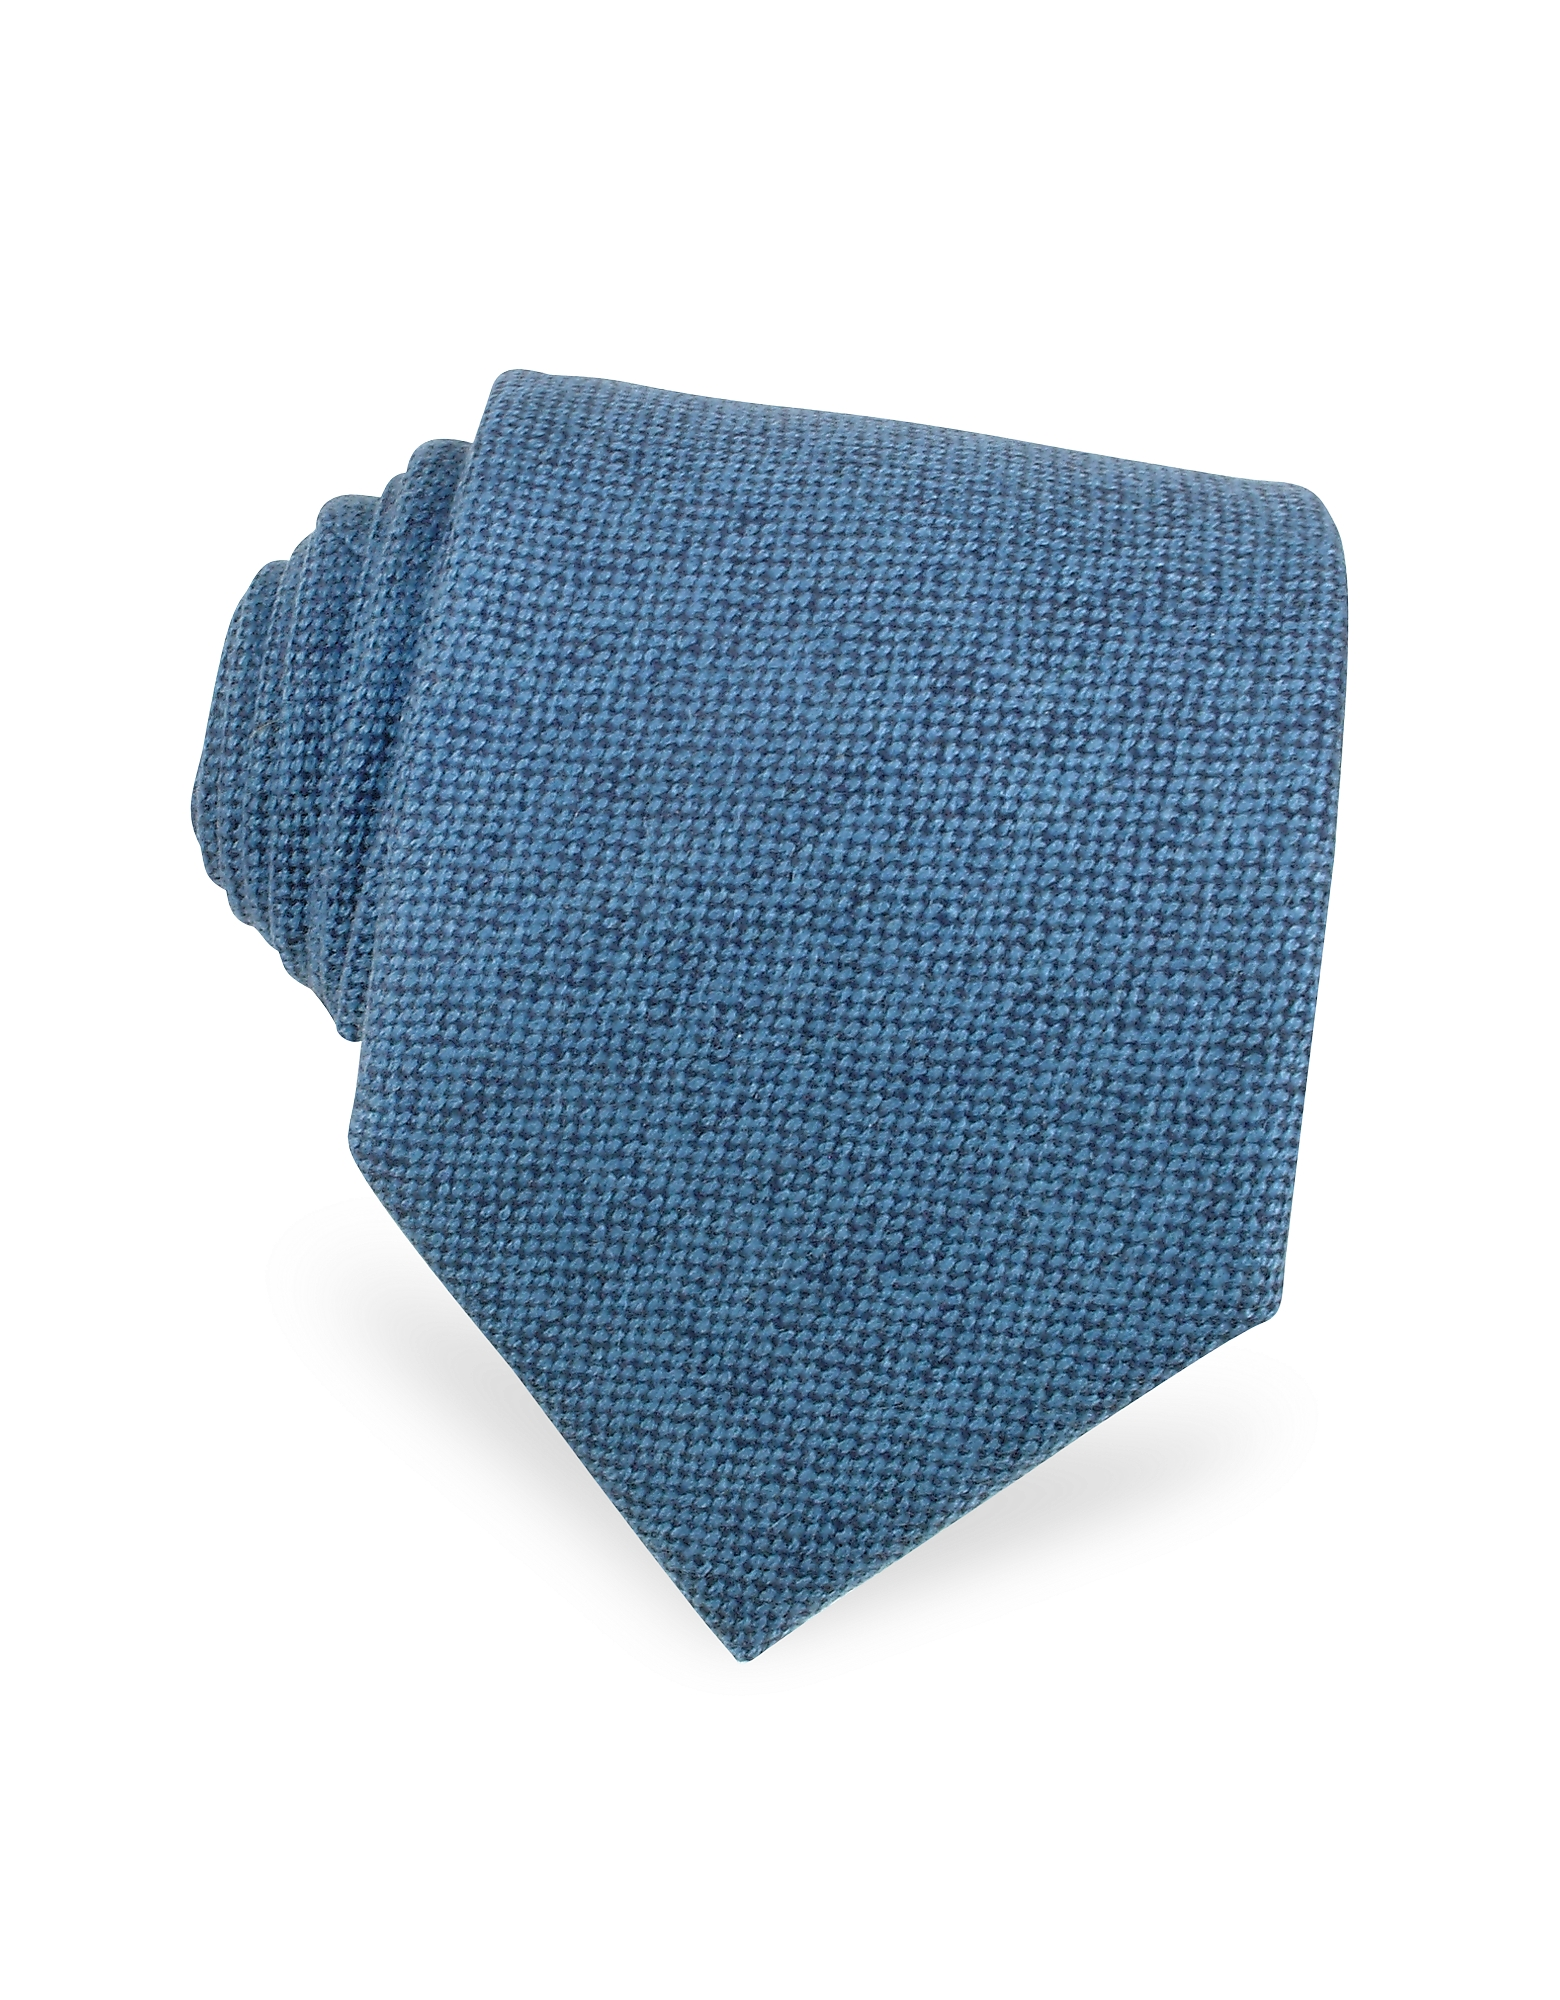 Solid Sky Blue Cashmere Extra-Long Tie